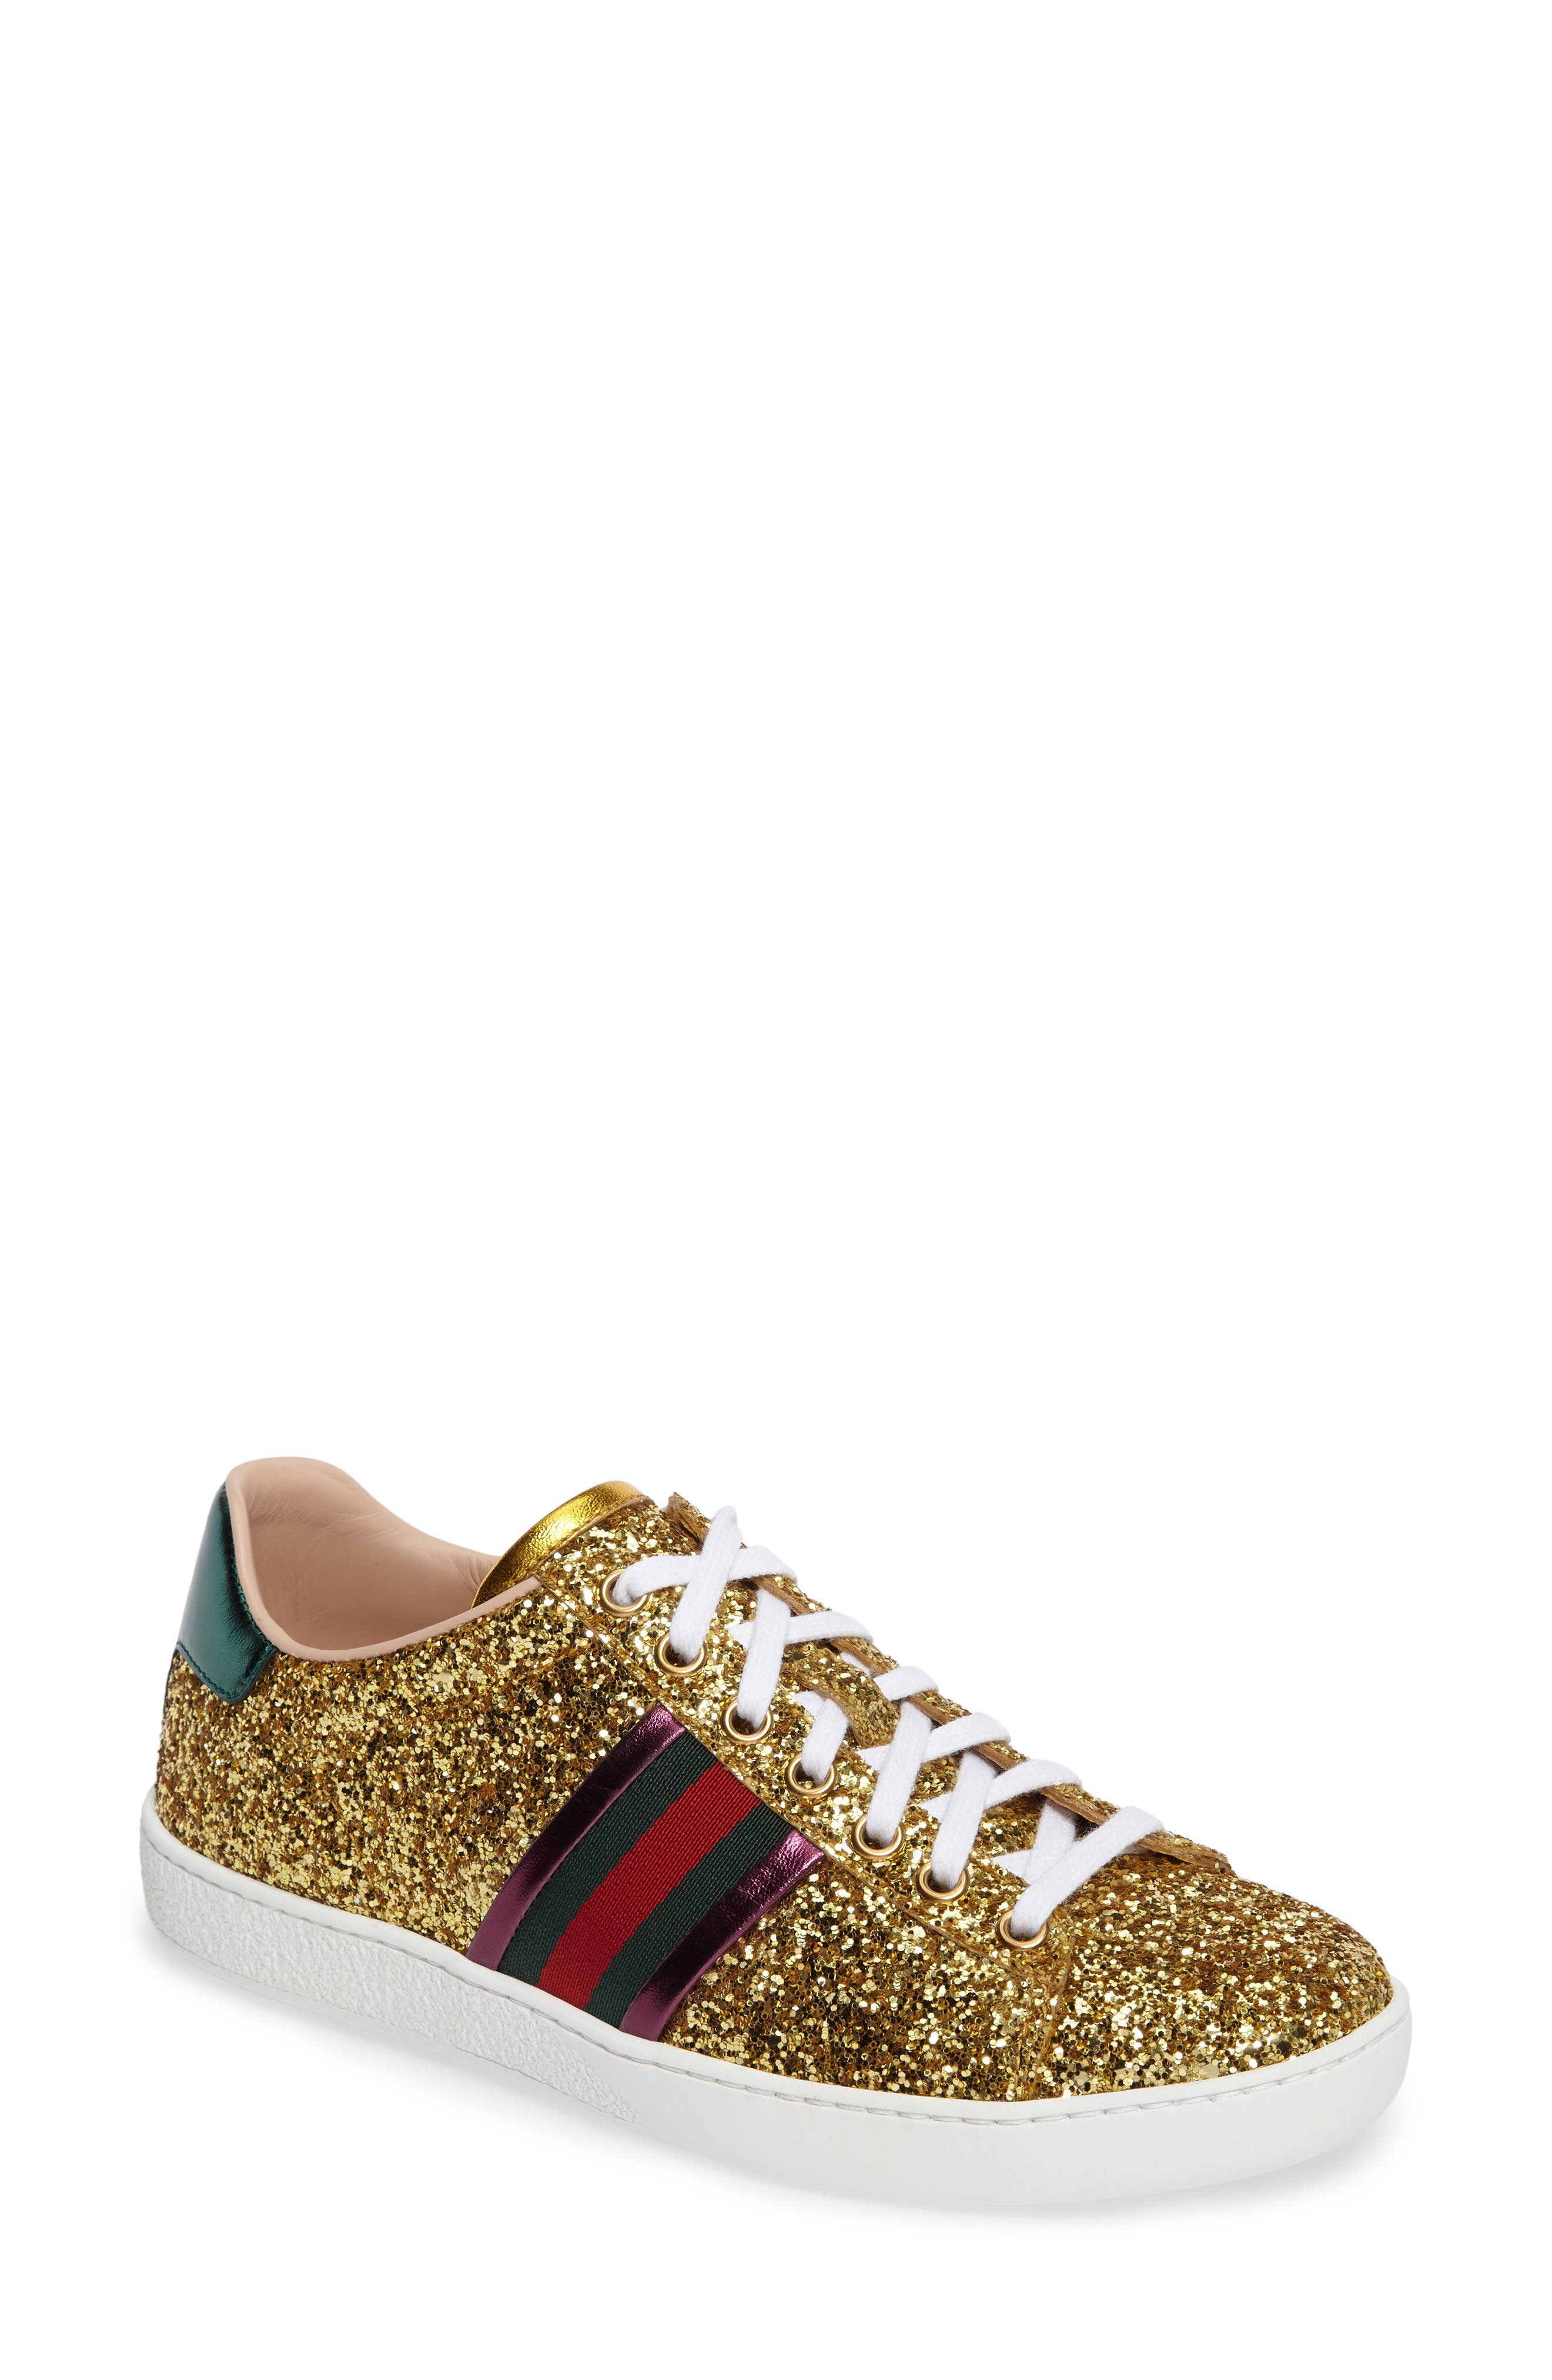 Harrods Womens Gucci Shoes